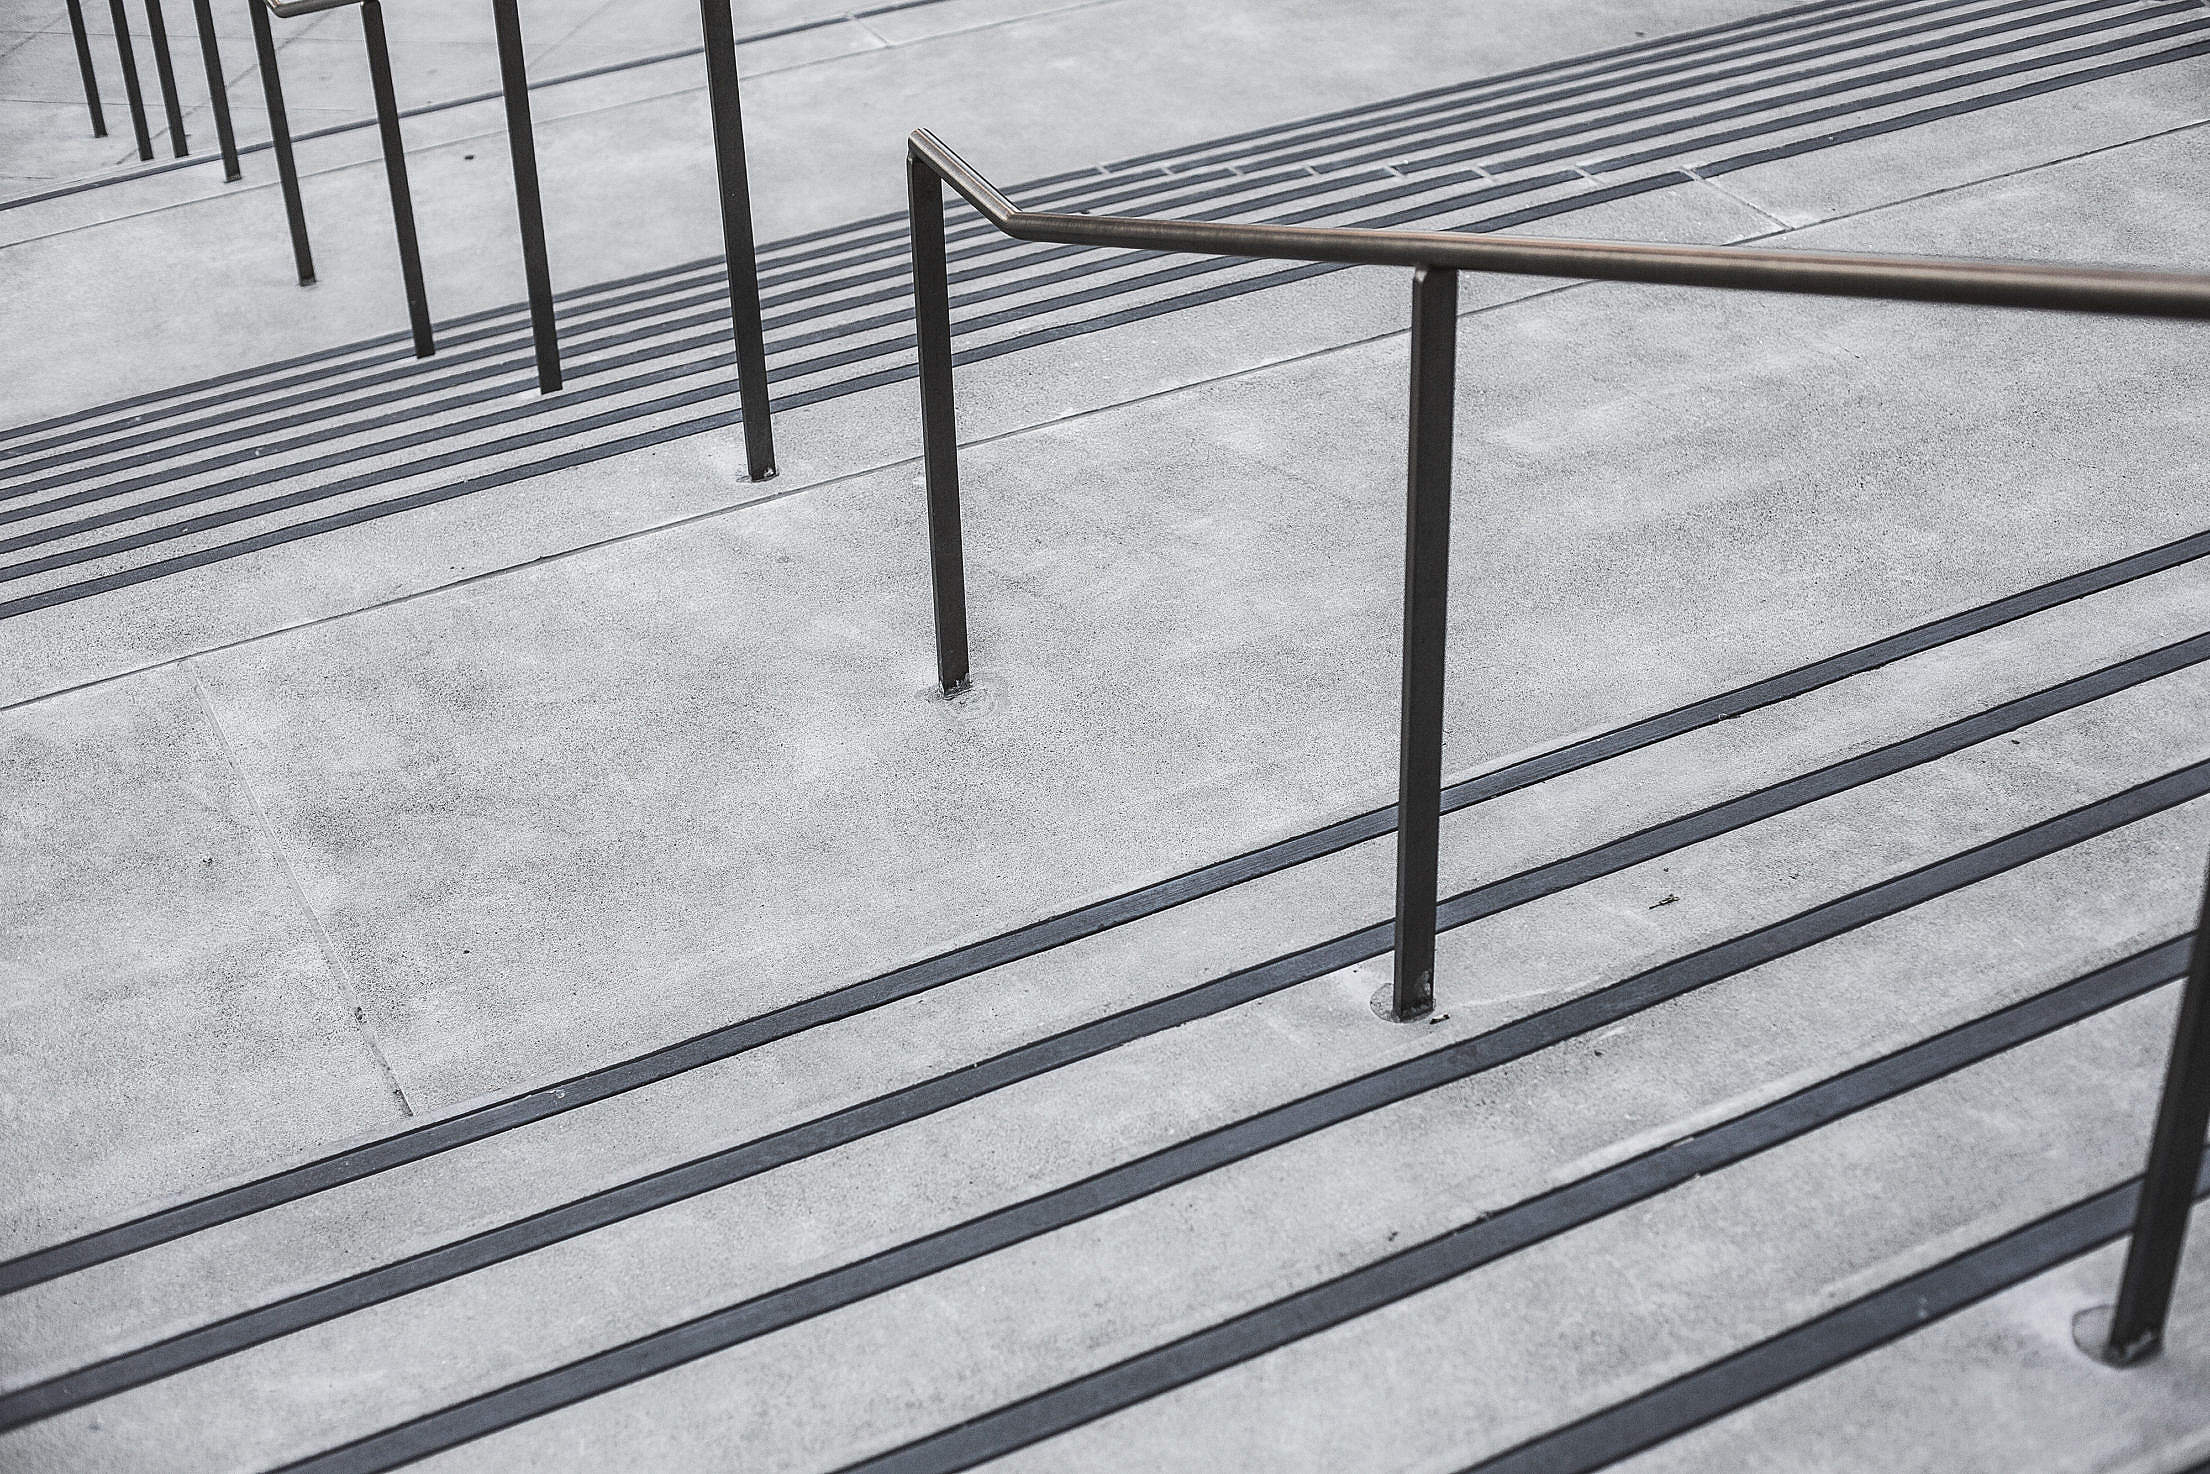 Clean Minimalistic Concrete Stairs Free Stock Photo